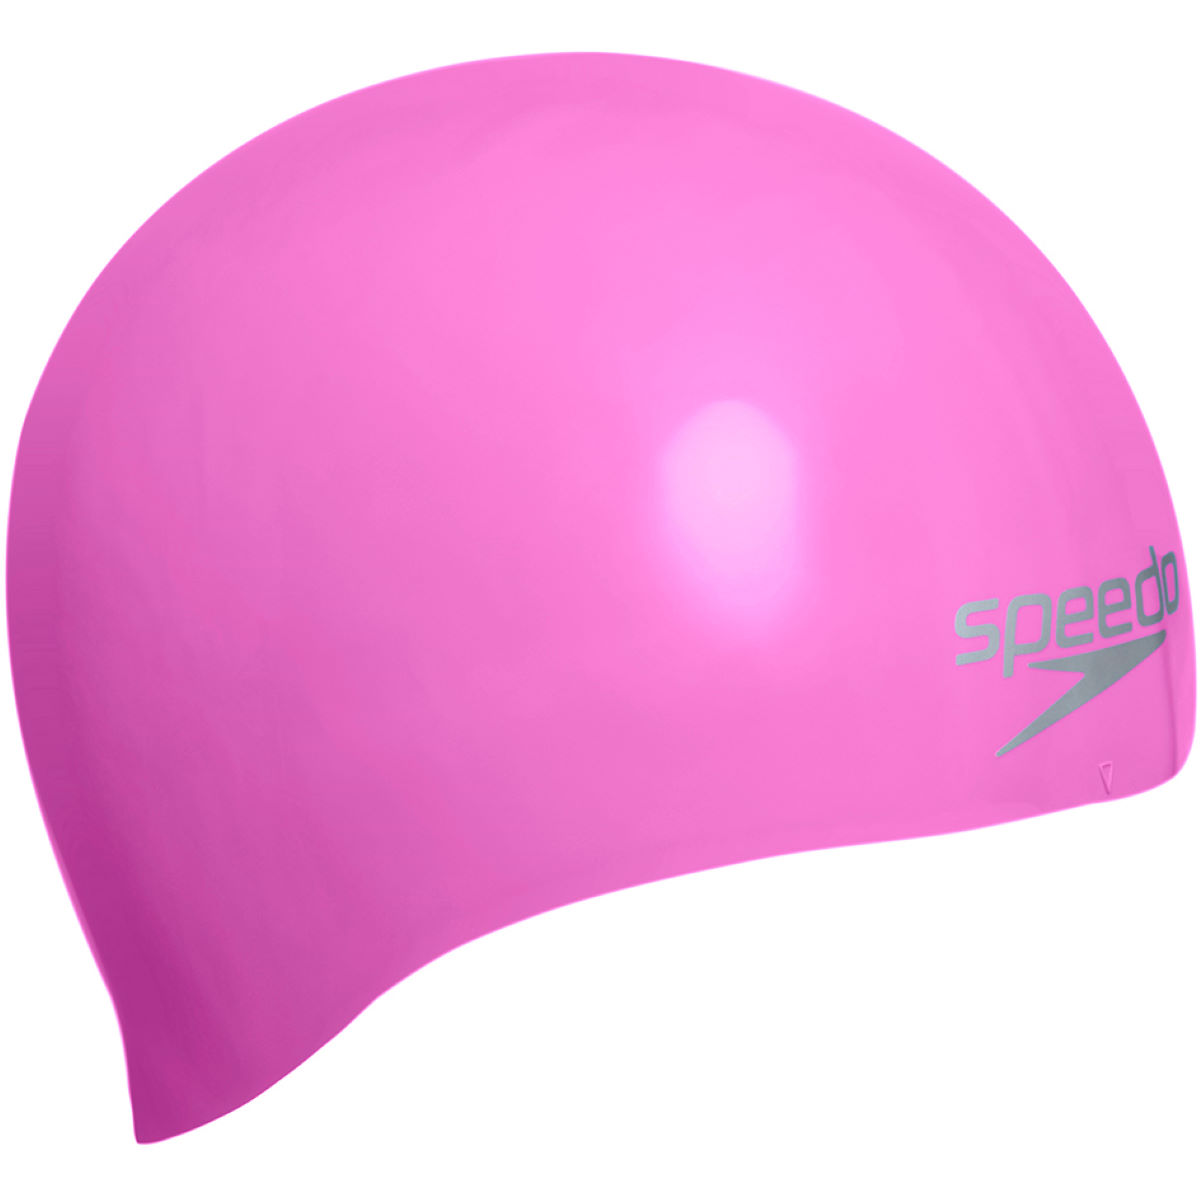 Bonnet de natation Speedo (uni, moulé en silicone) - Taille unique Ecstatic Bonnets de bain